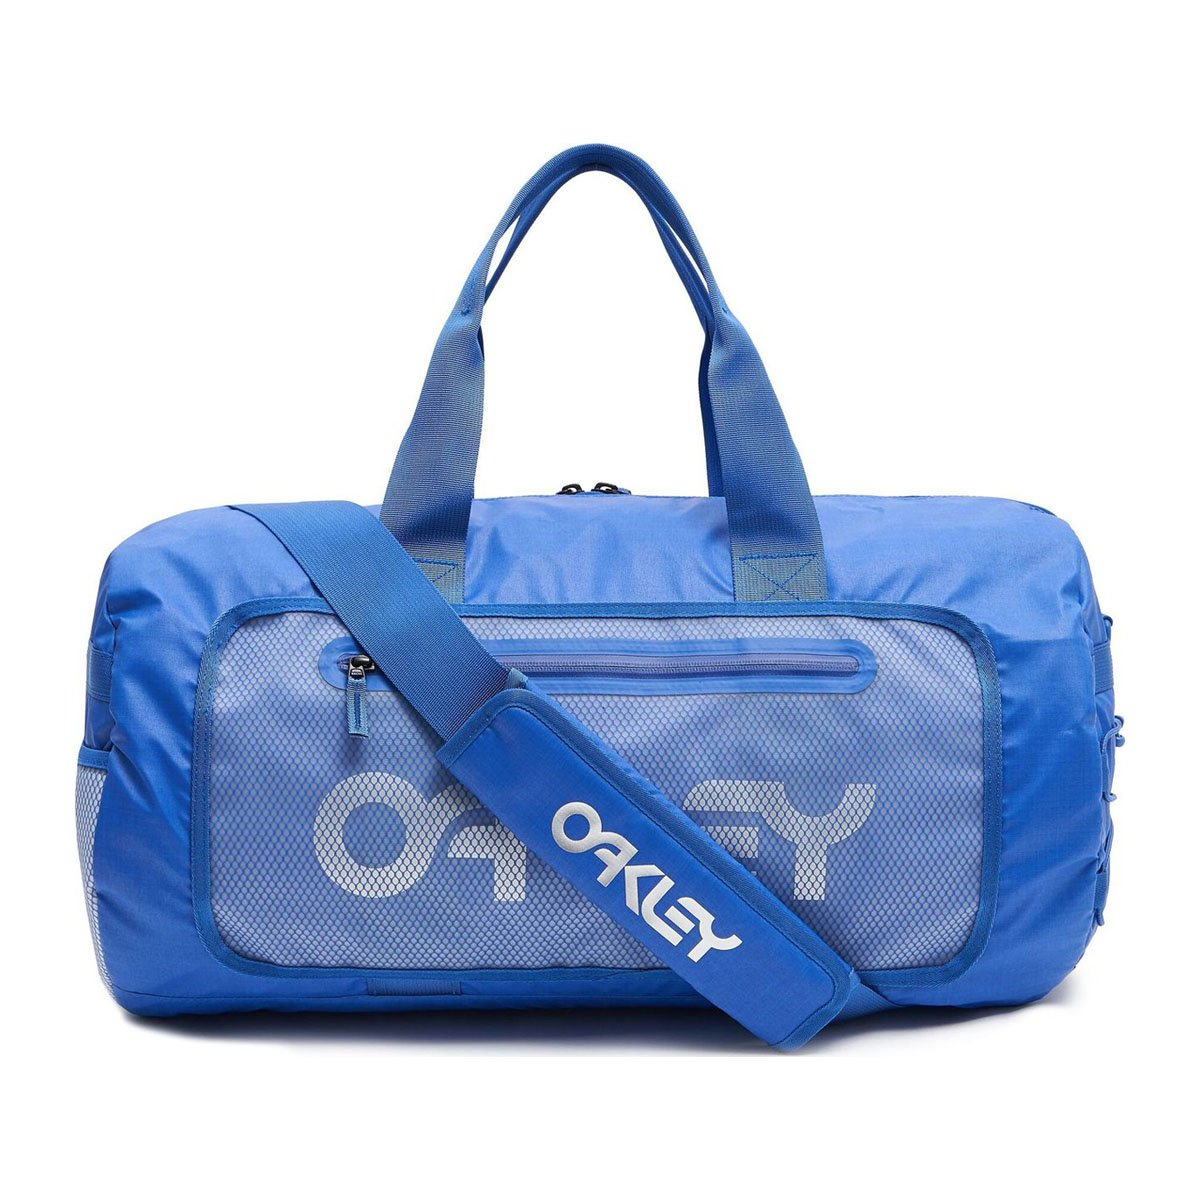 90s BIG DUFFLE BAG